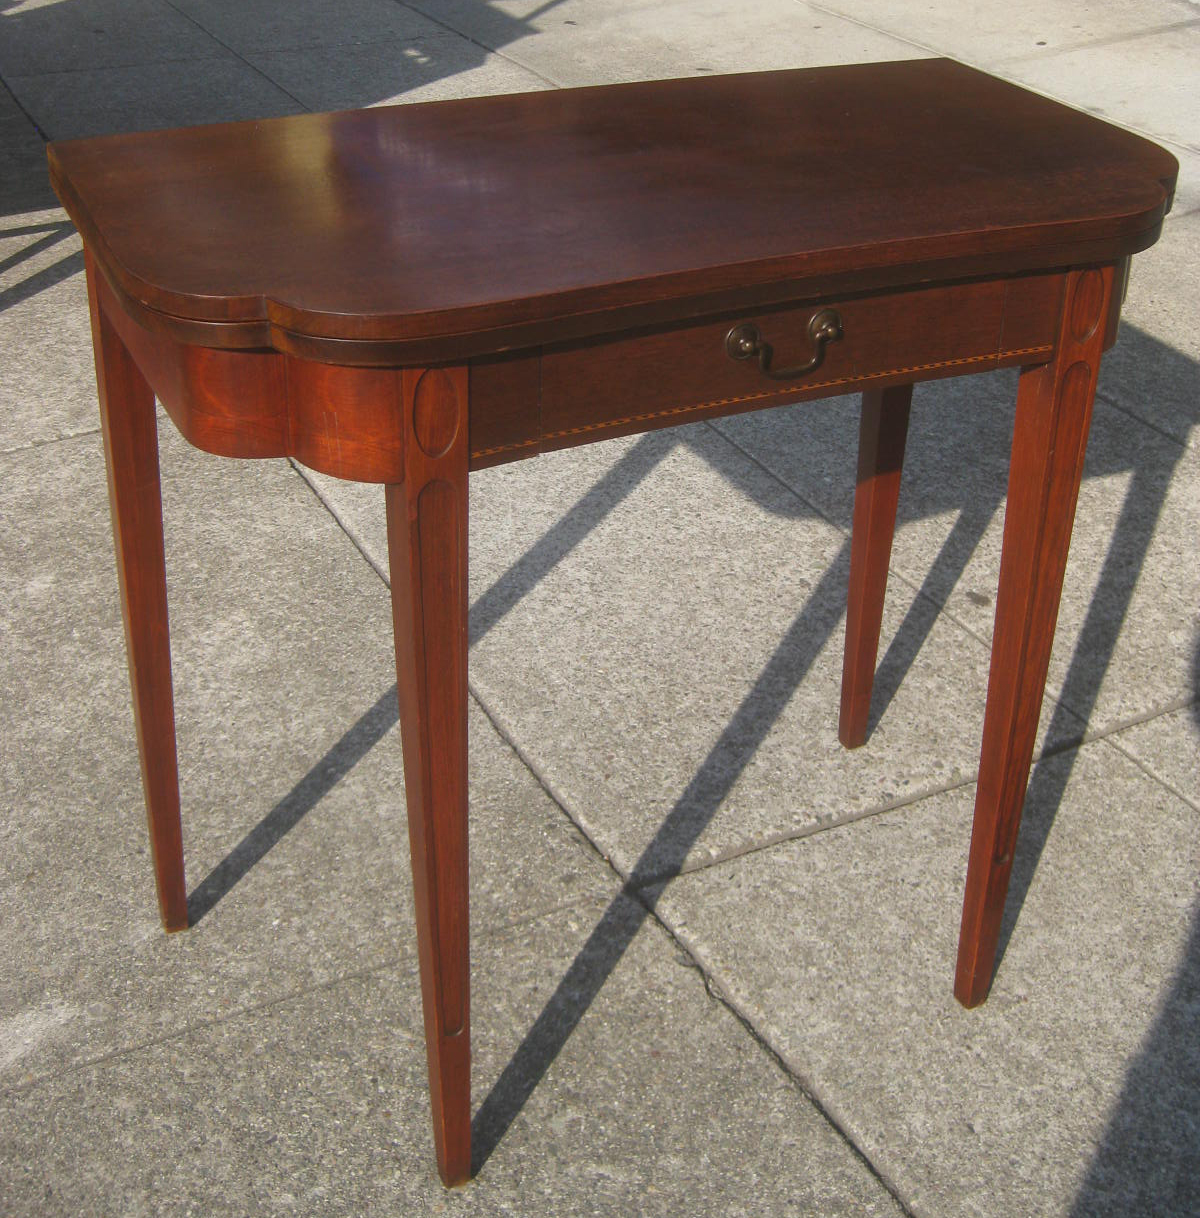 Eating Tables: UHURU FURNITURE & COLLECTIBLES: SOLD